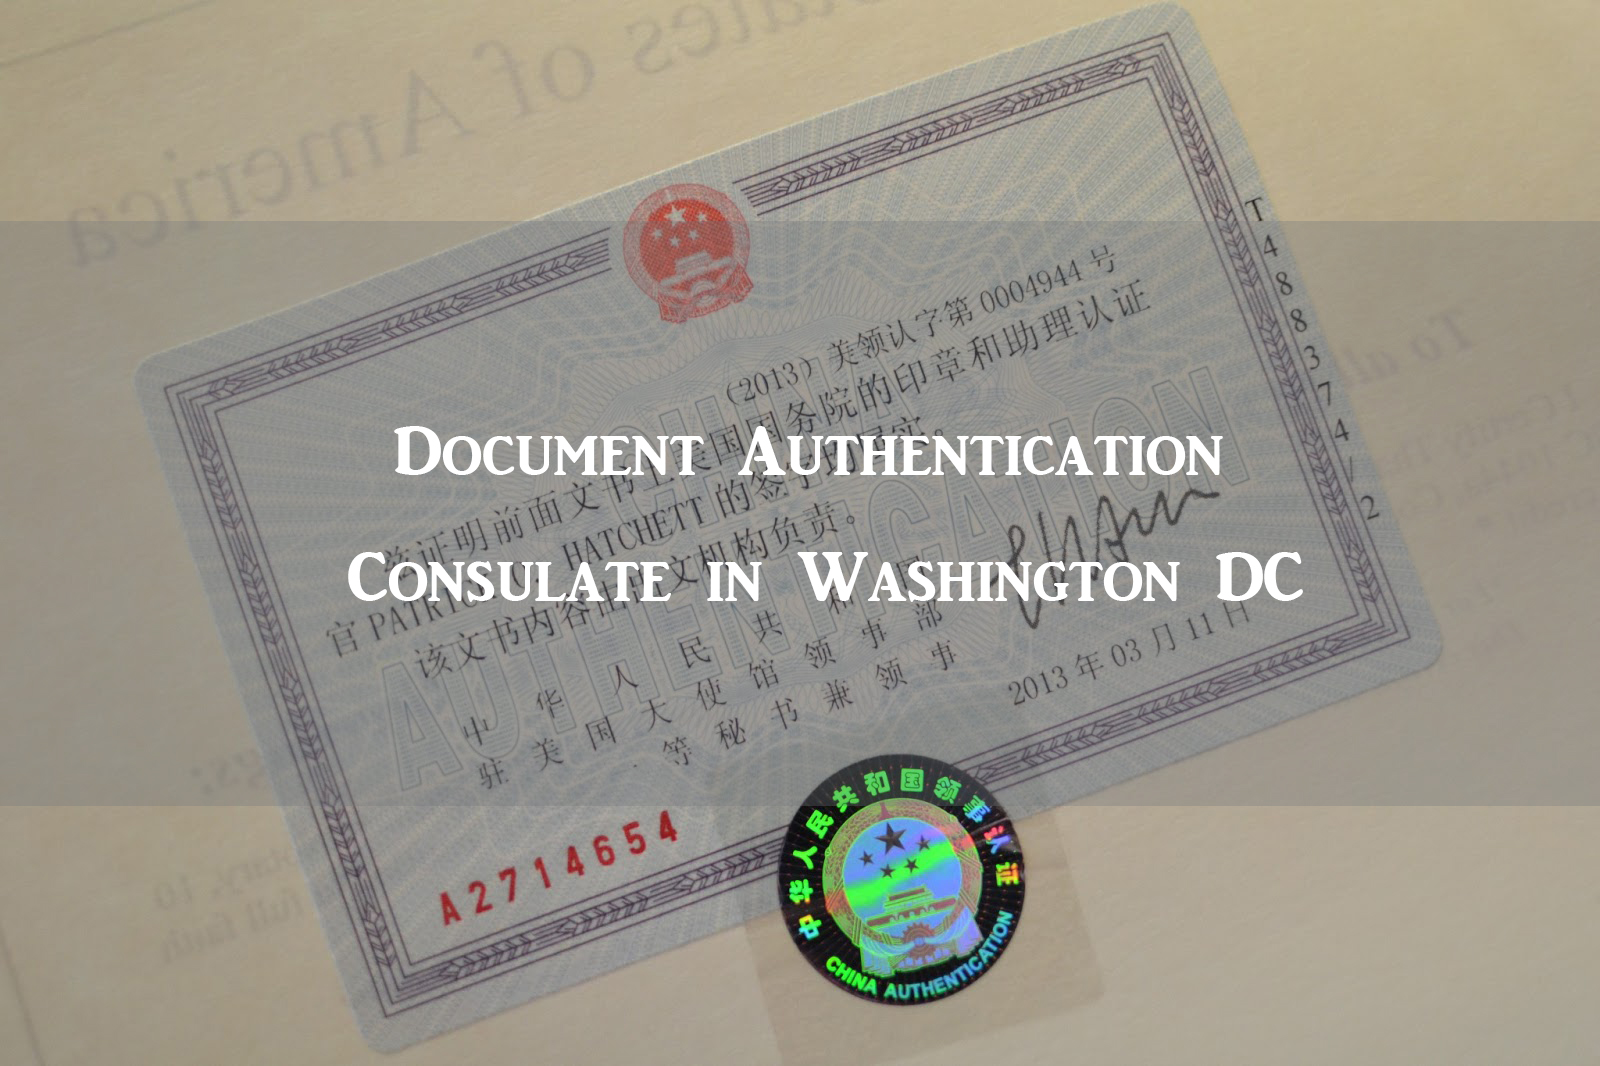 document authentication consulate in washington dc visa With document authentication services washington dc